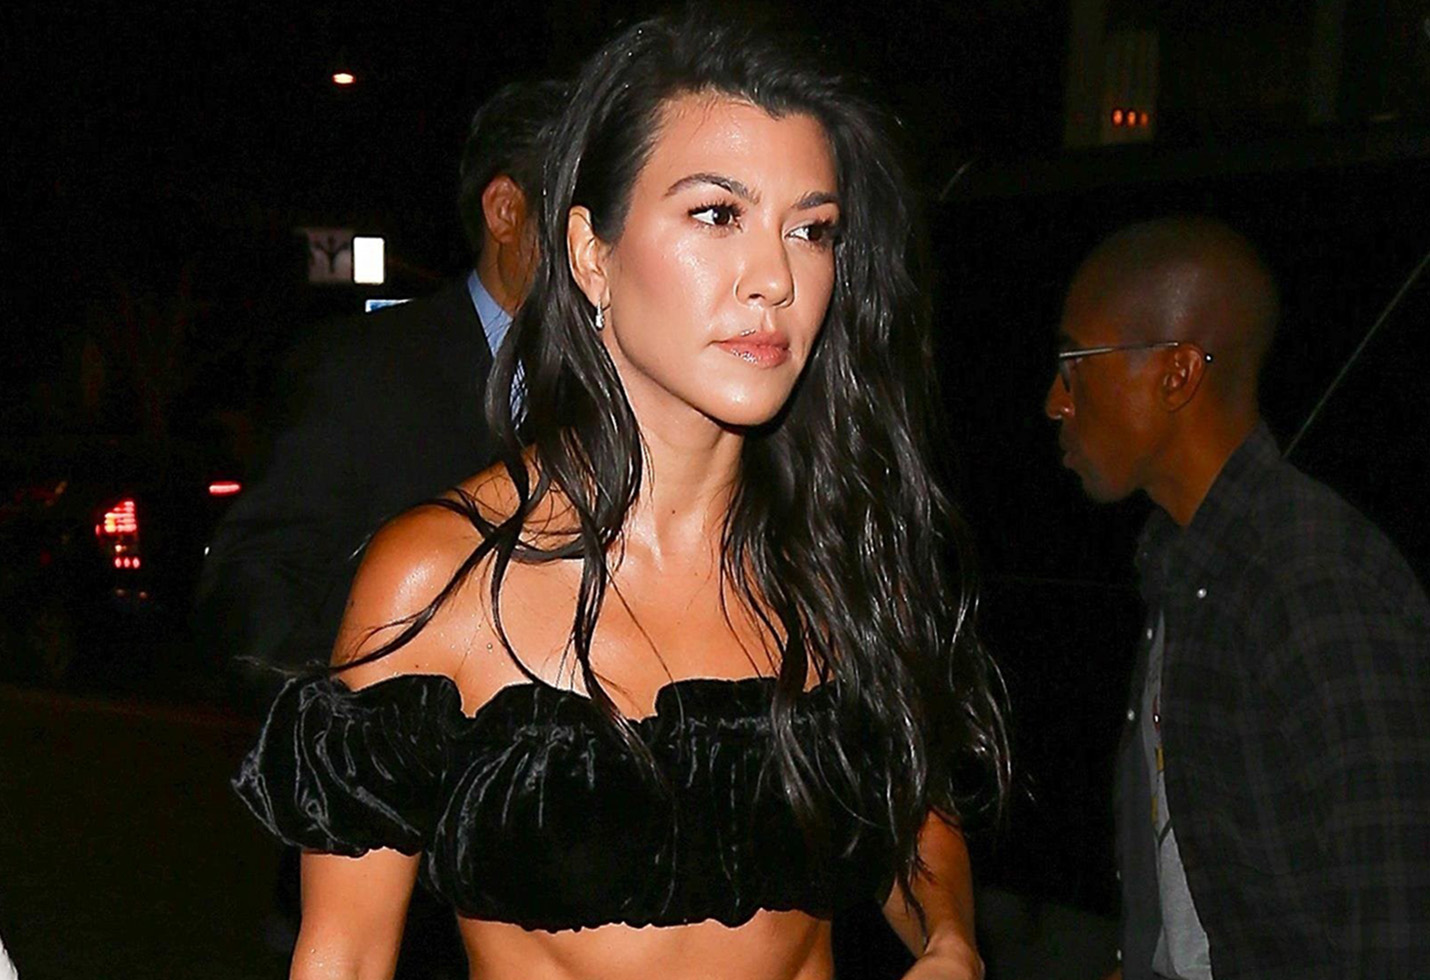 Kourtney Kardashian surprises little sister Khloe at a birthday celebration